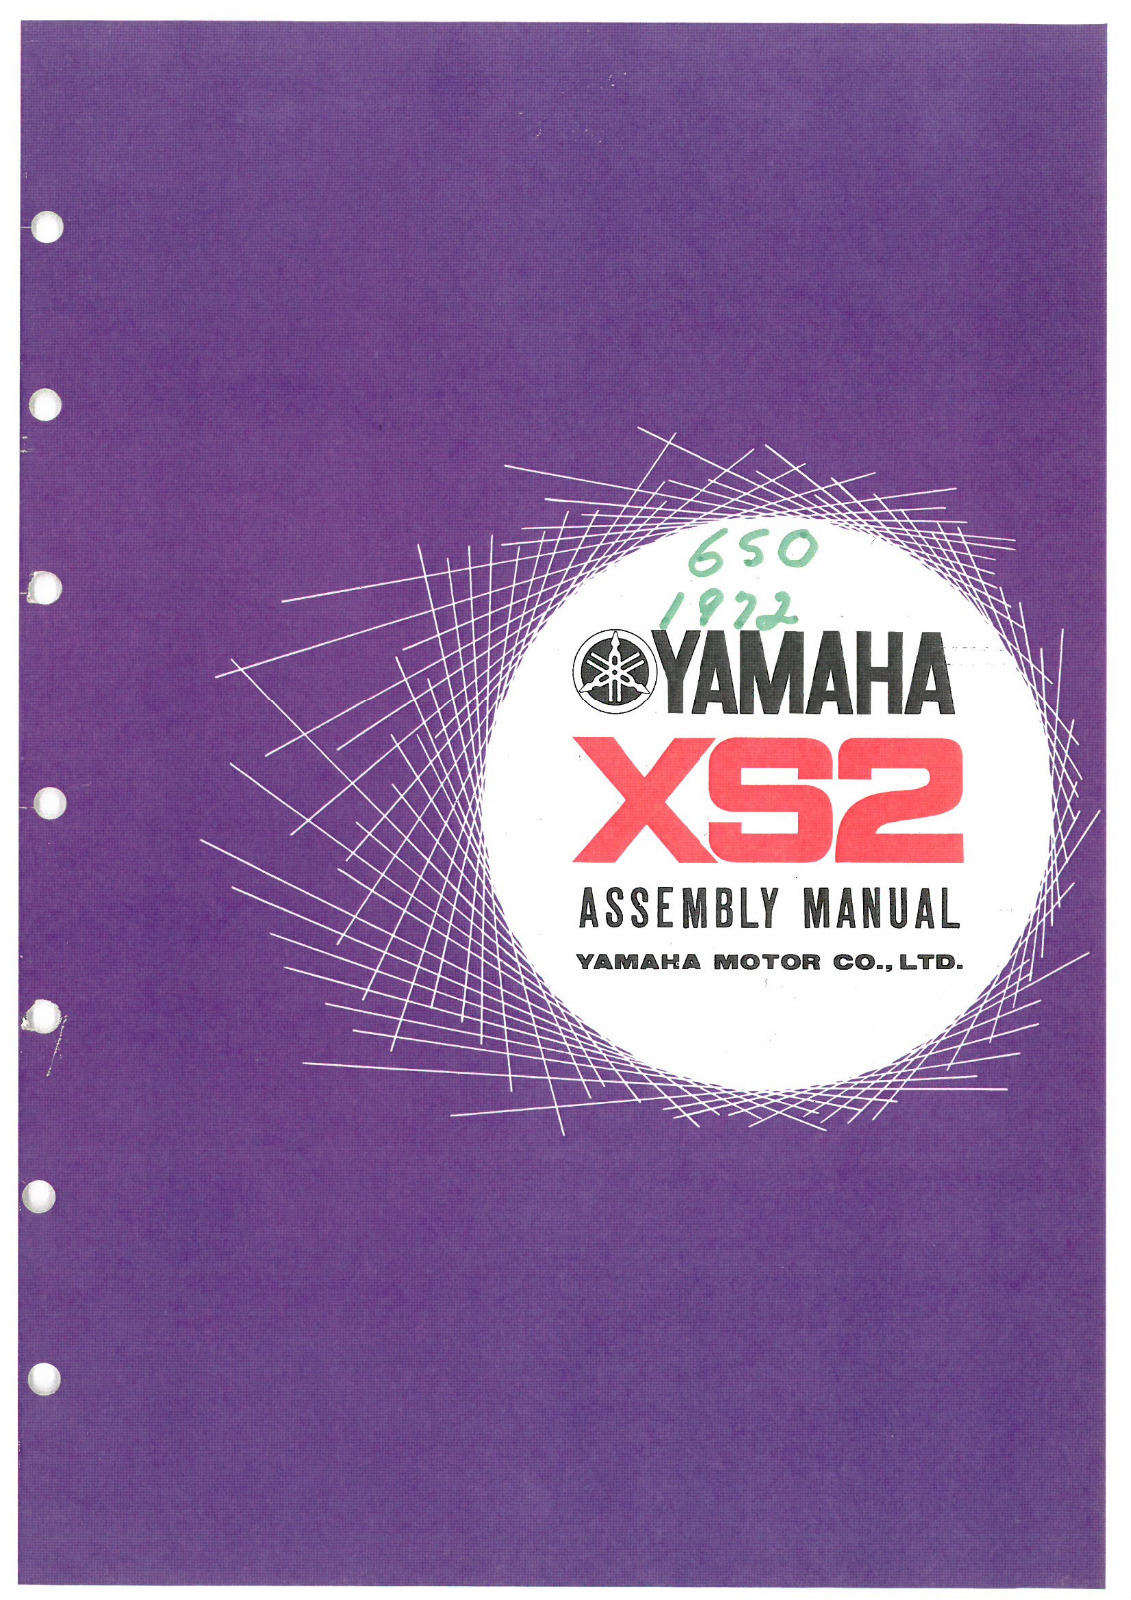 web 72 xs2 wiring diagram yamaha xs2 parts \u2022 indy500 co XS2 Bow String at edmiracle.co